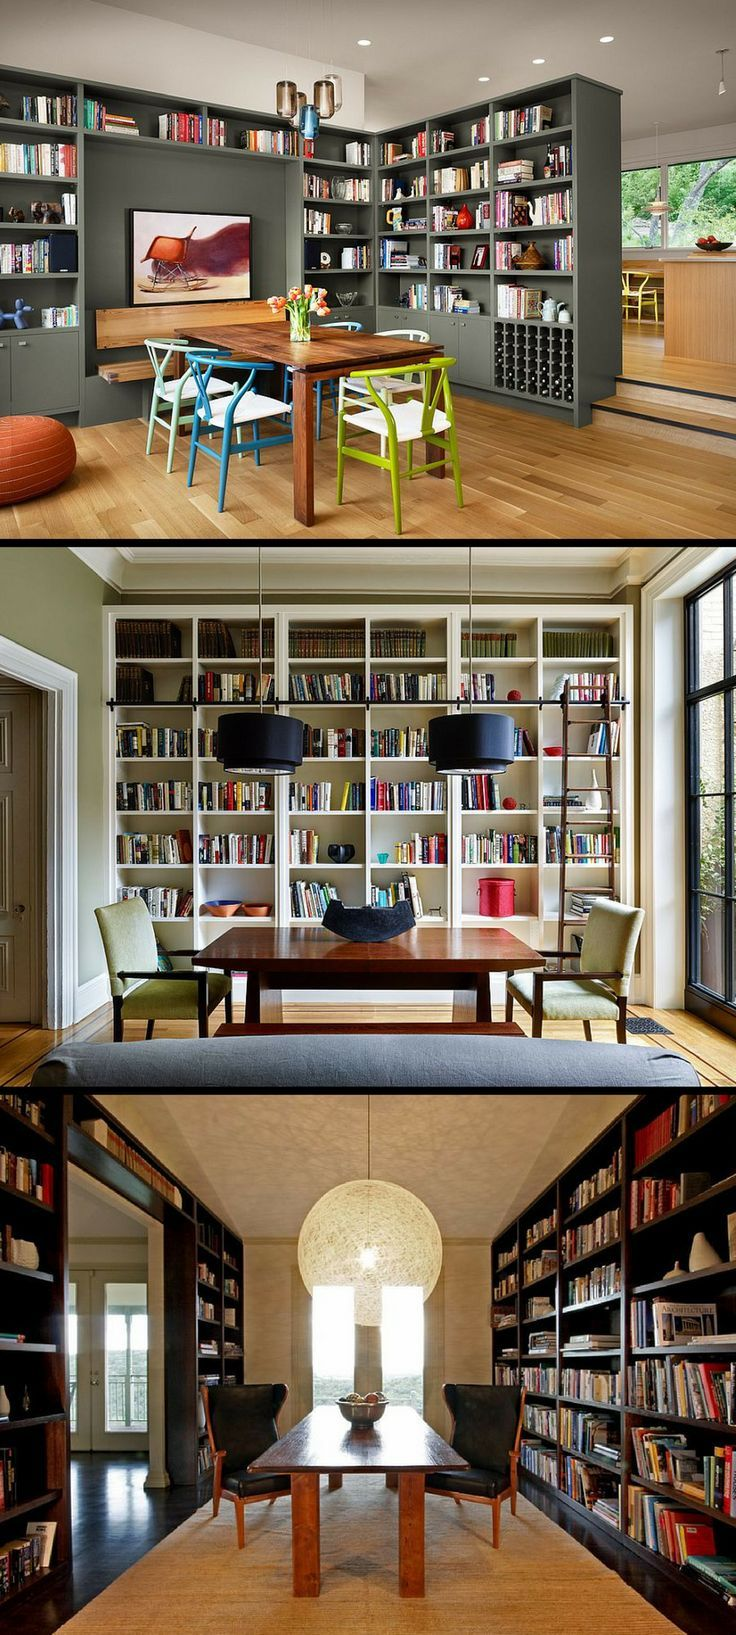 Dining Room Library Ideas: 25 Dining Rooms And Library Combinations, Ideas